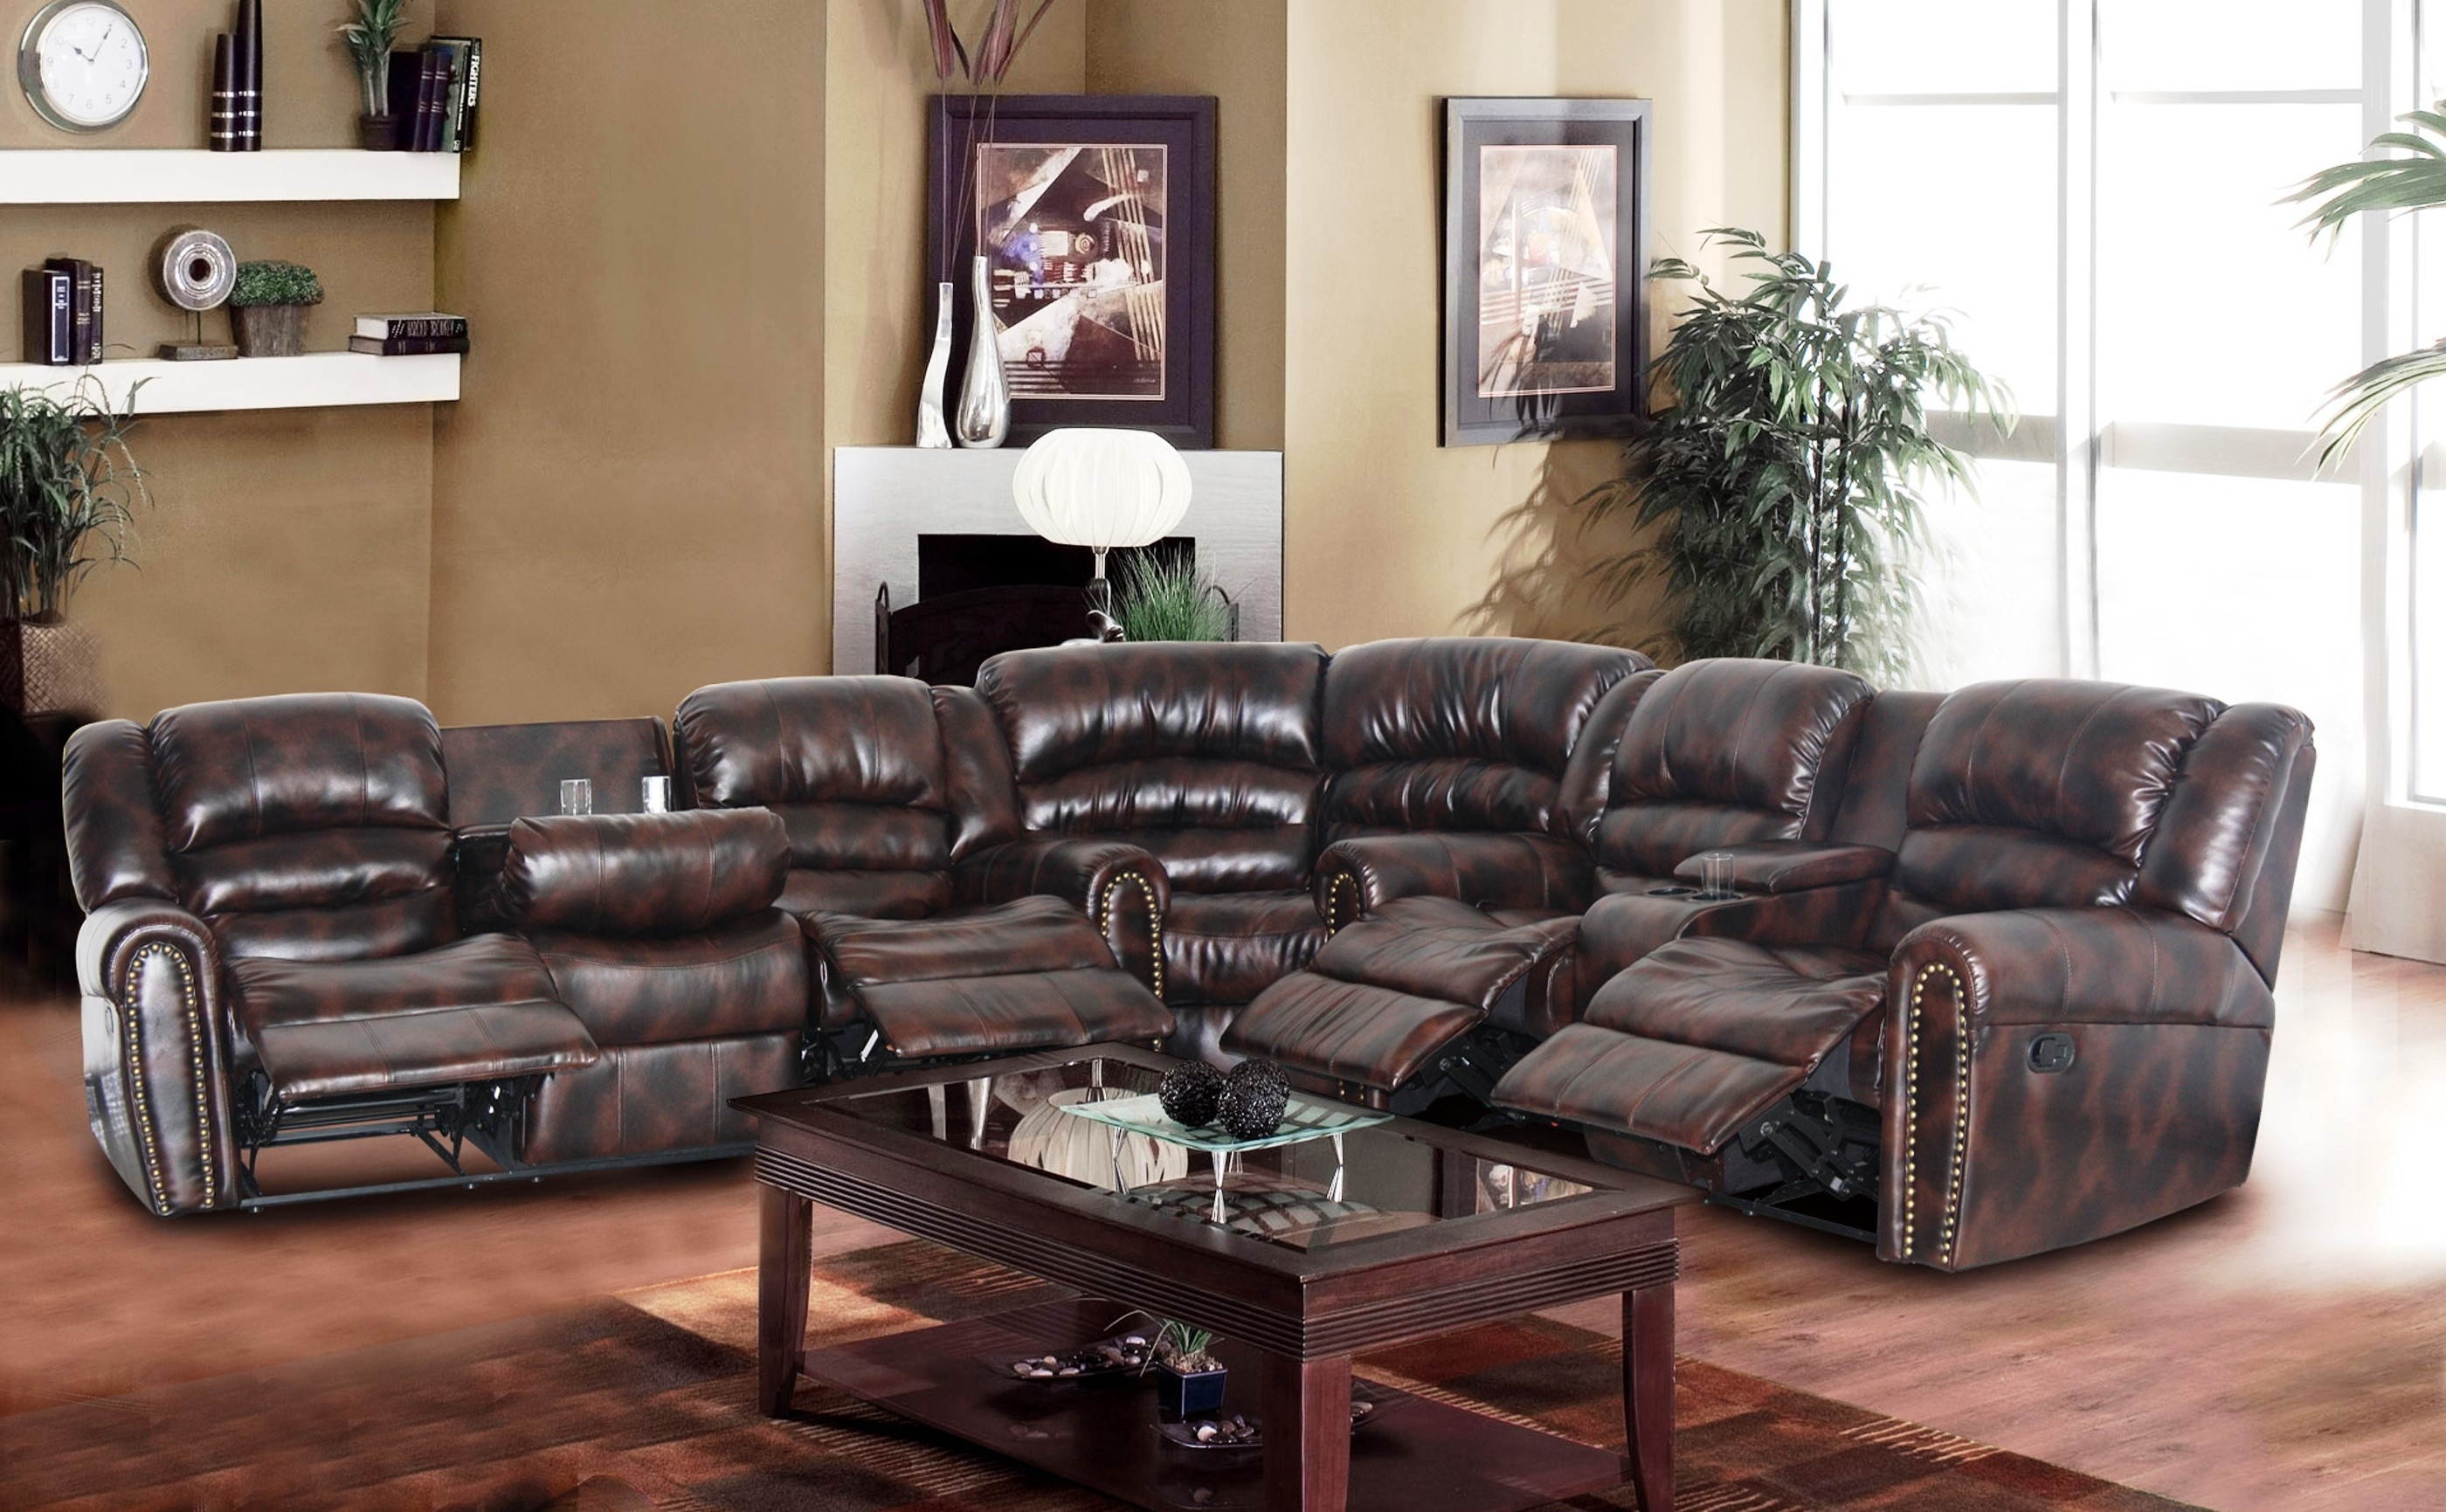 Fabric Reclining Sectional Costco Reclining Sectional With Cup Inside Latest Big U Shaped Sectionals (View 7 of 20)